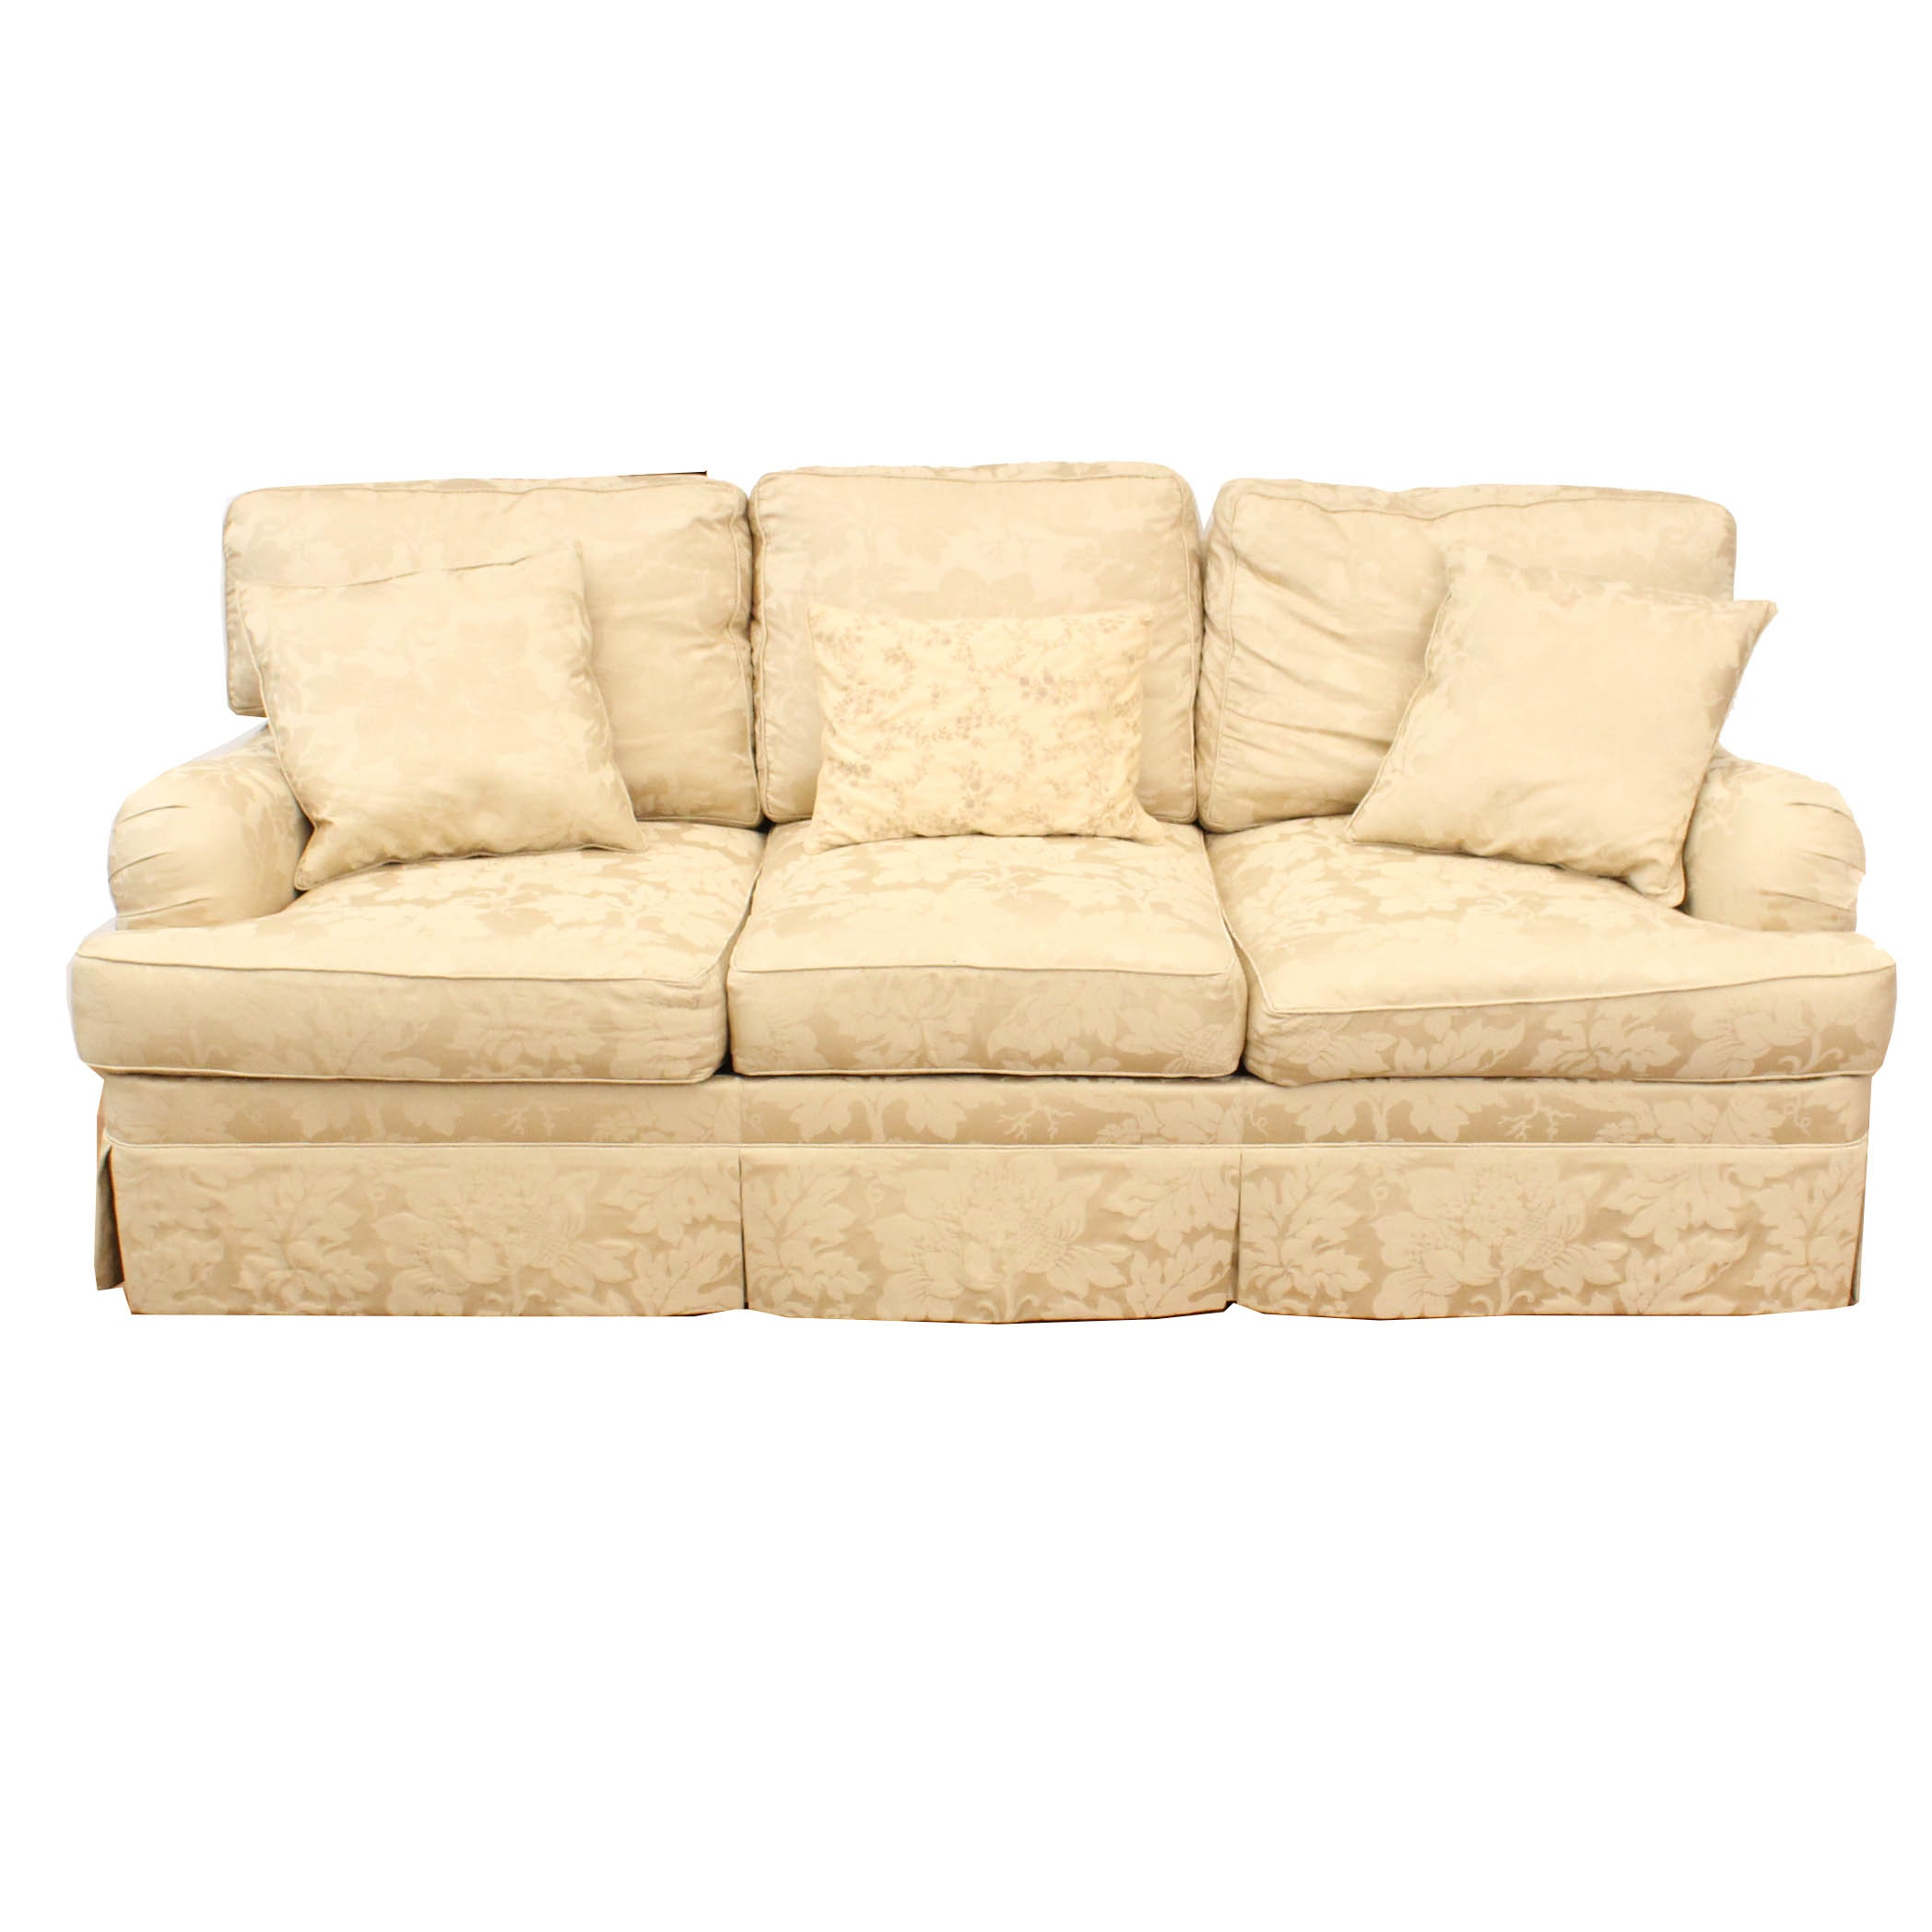 Down Filled Sofa by Hickory Chair Furniture Company